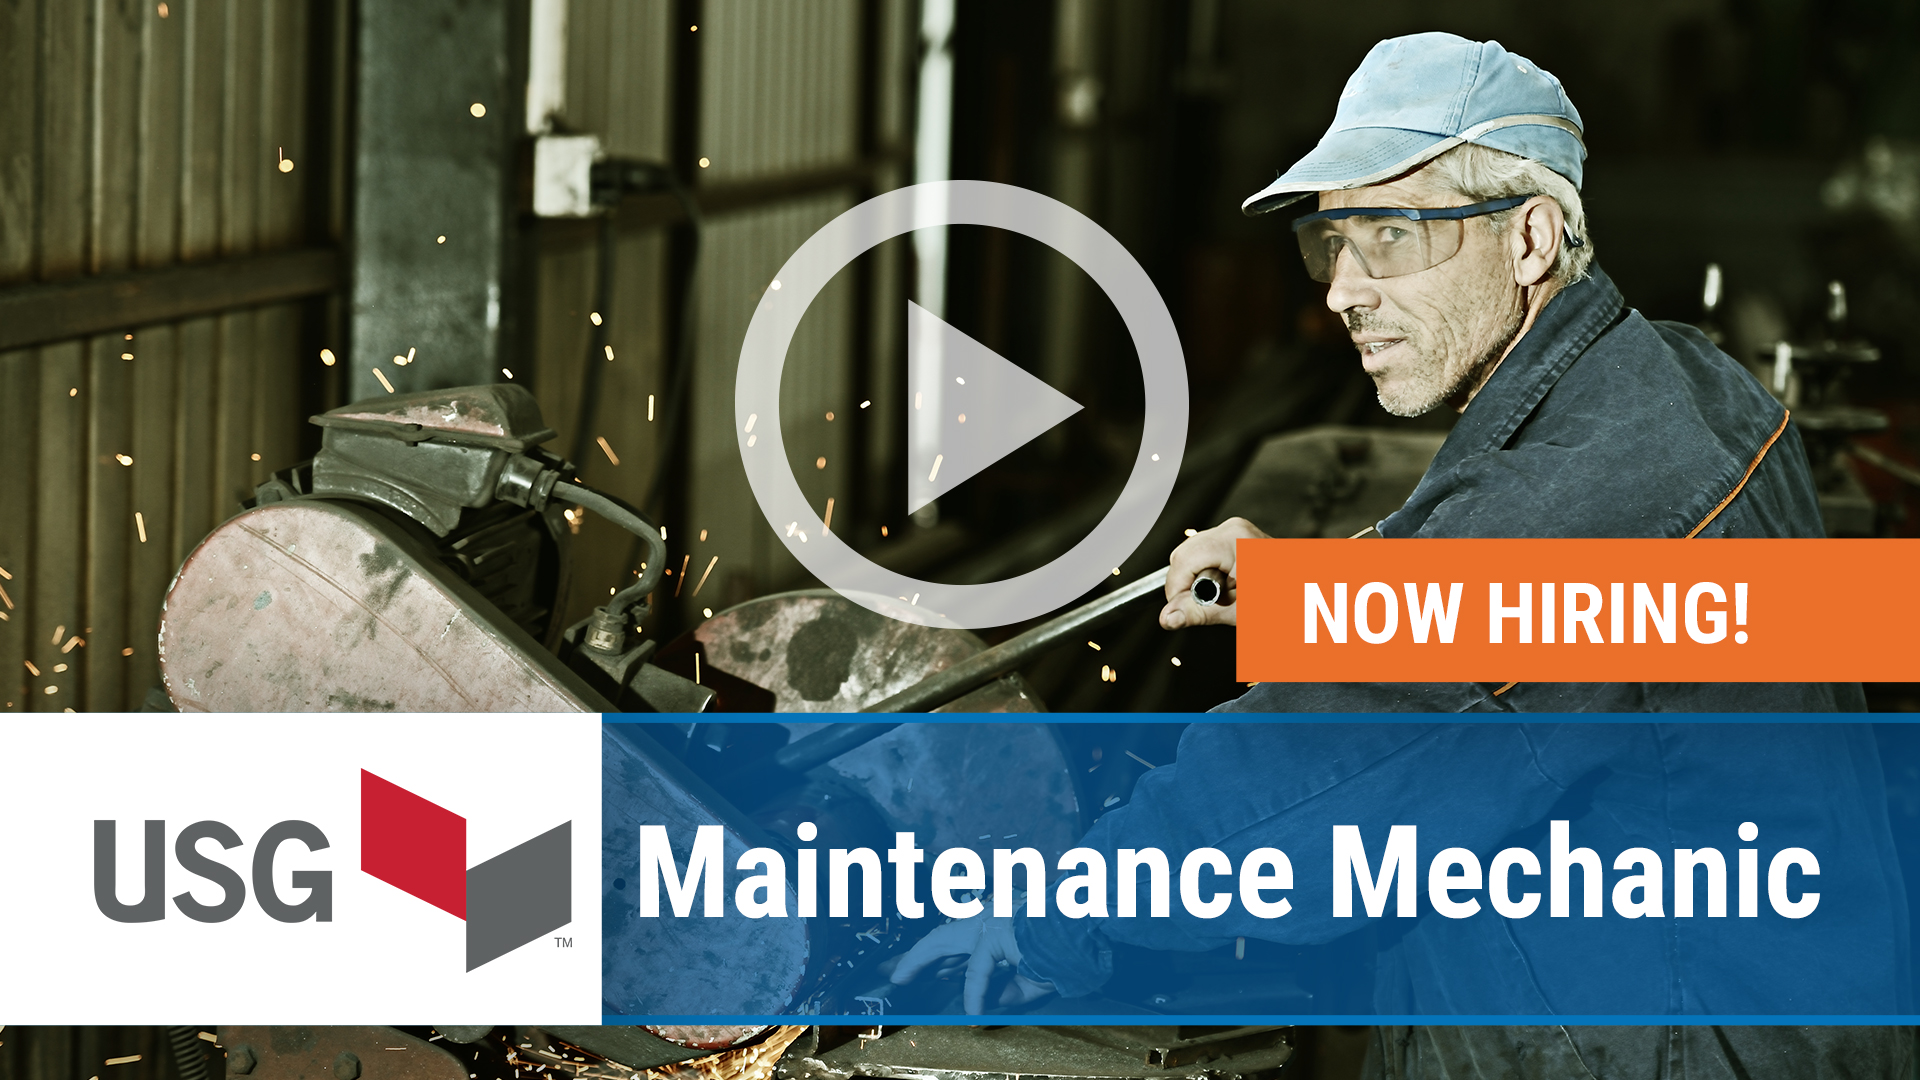 Watch our careers video for available job opening Maintenance Mechanic in Westlake, OH